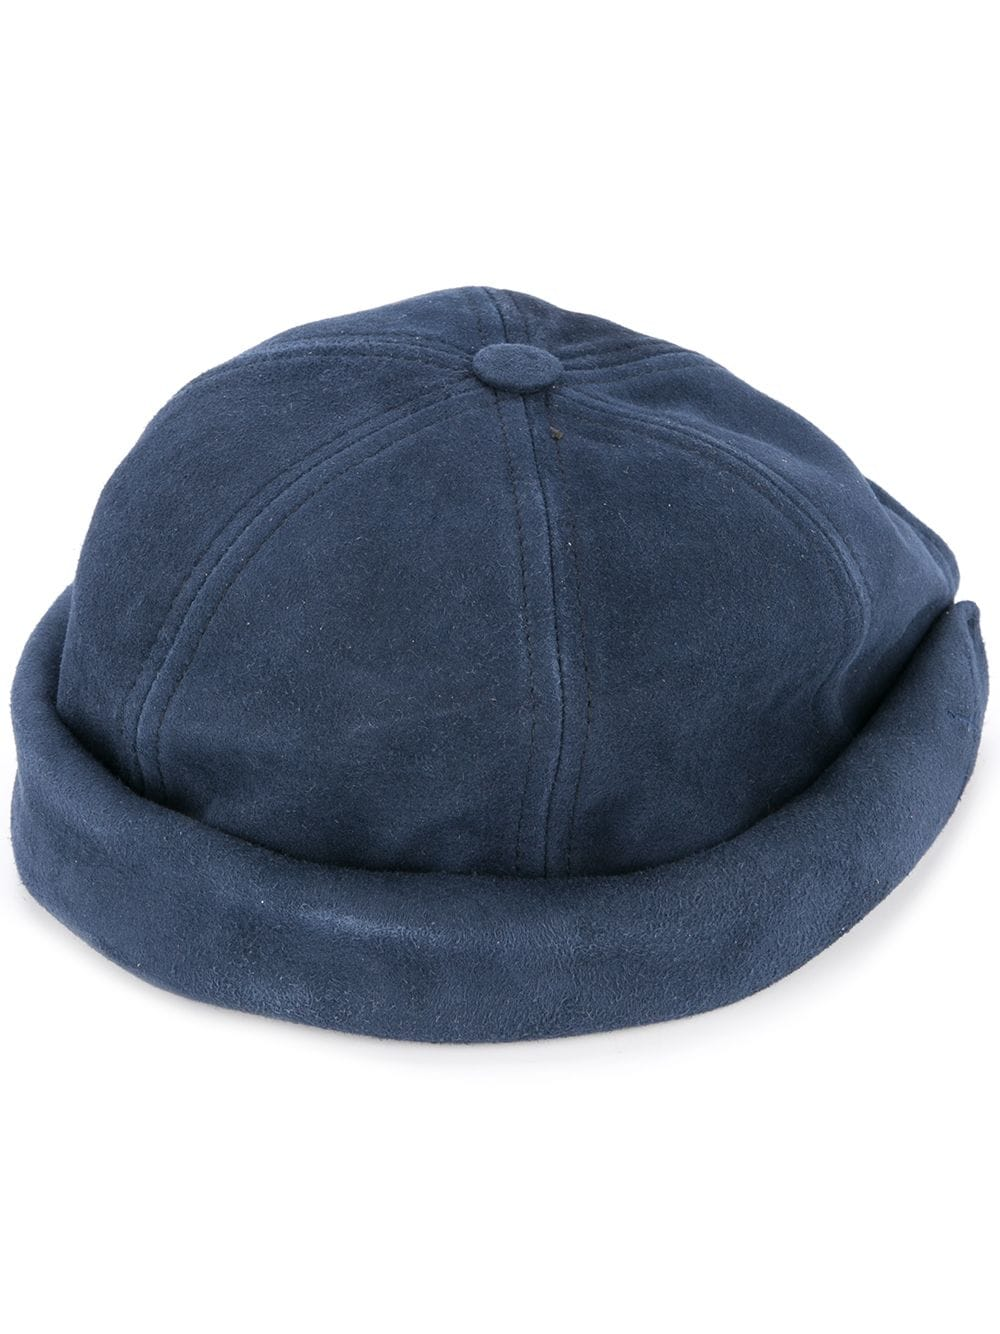 9ae3b3793b2 https   milanstyle.com products beton-cire-moussailion-hat-blue ...